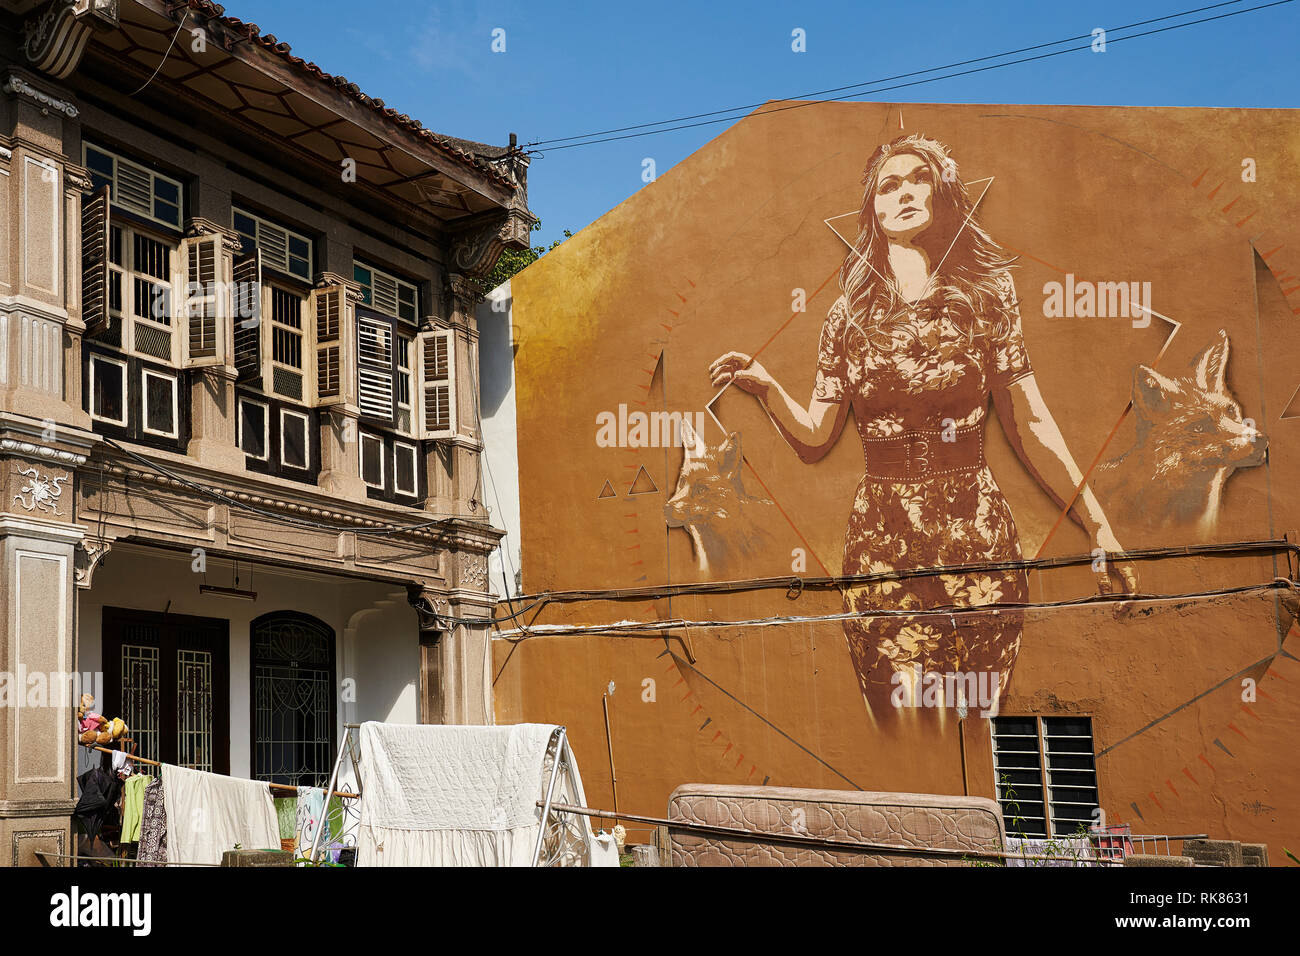 Mural by TankPetrol along Presgrave Street and view of the roof of the old town from the top of the hotel Neo in George Town, Penang, Malaysia - Stock Image